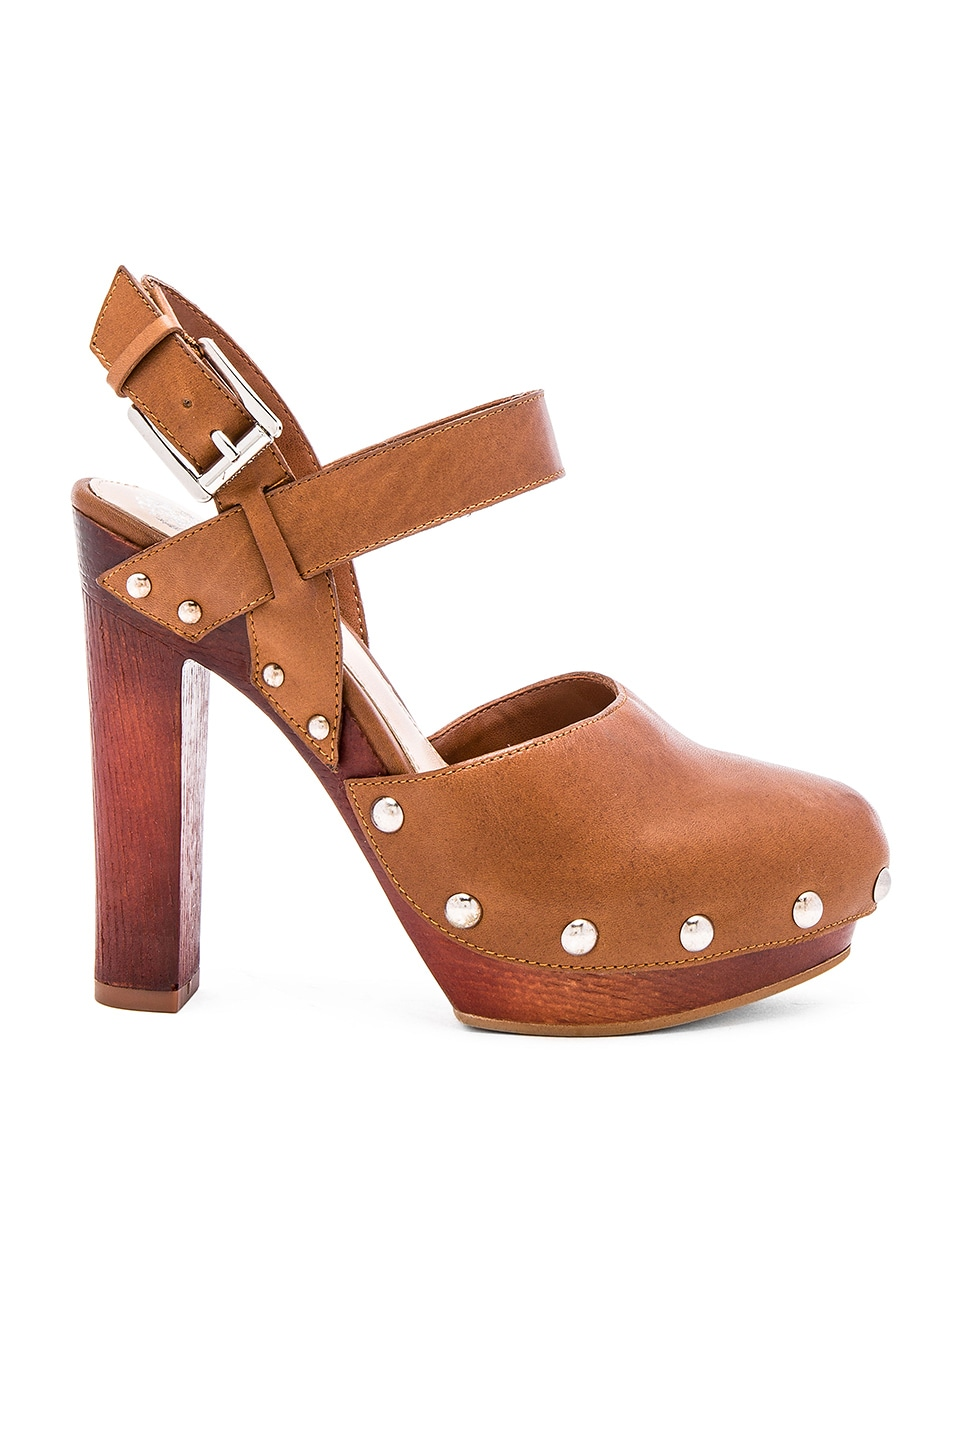 Vince Camuto Elric Heel in Totally Toffee